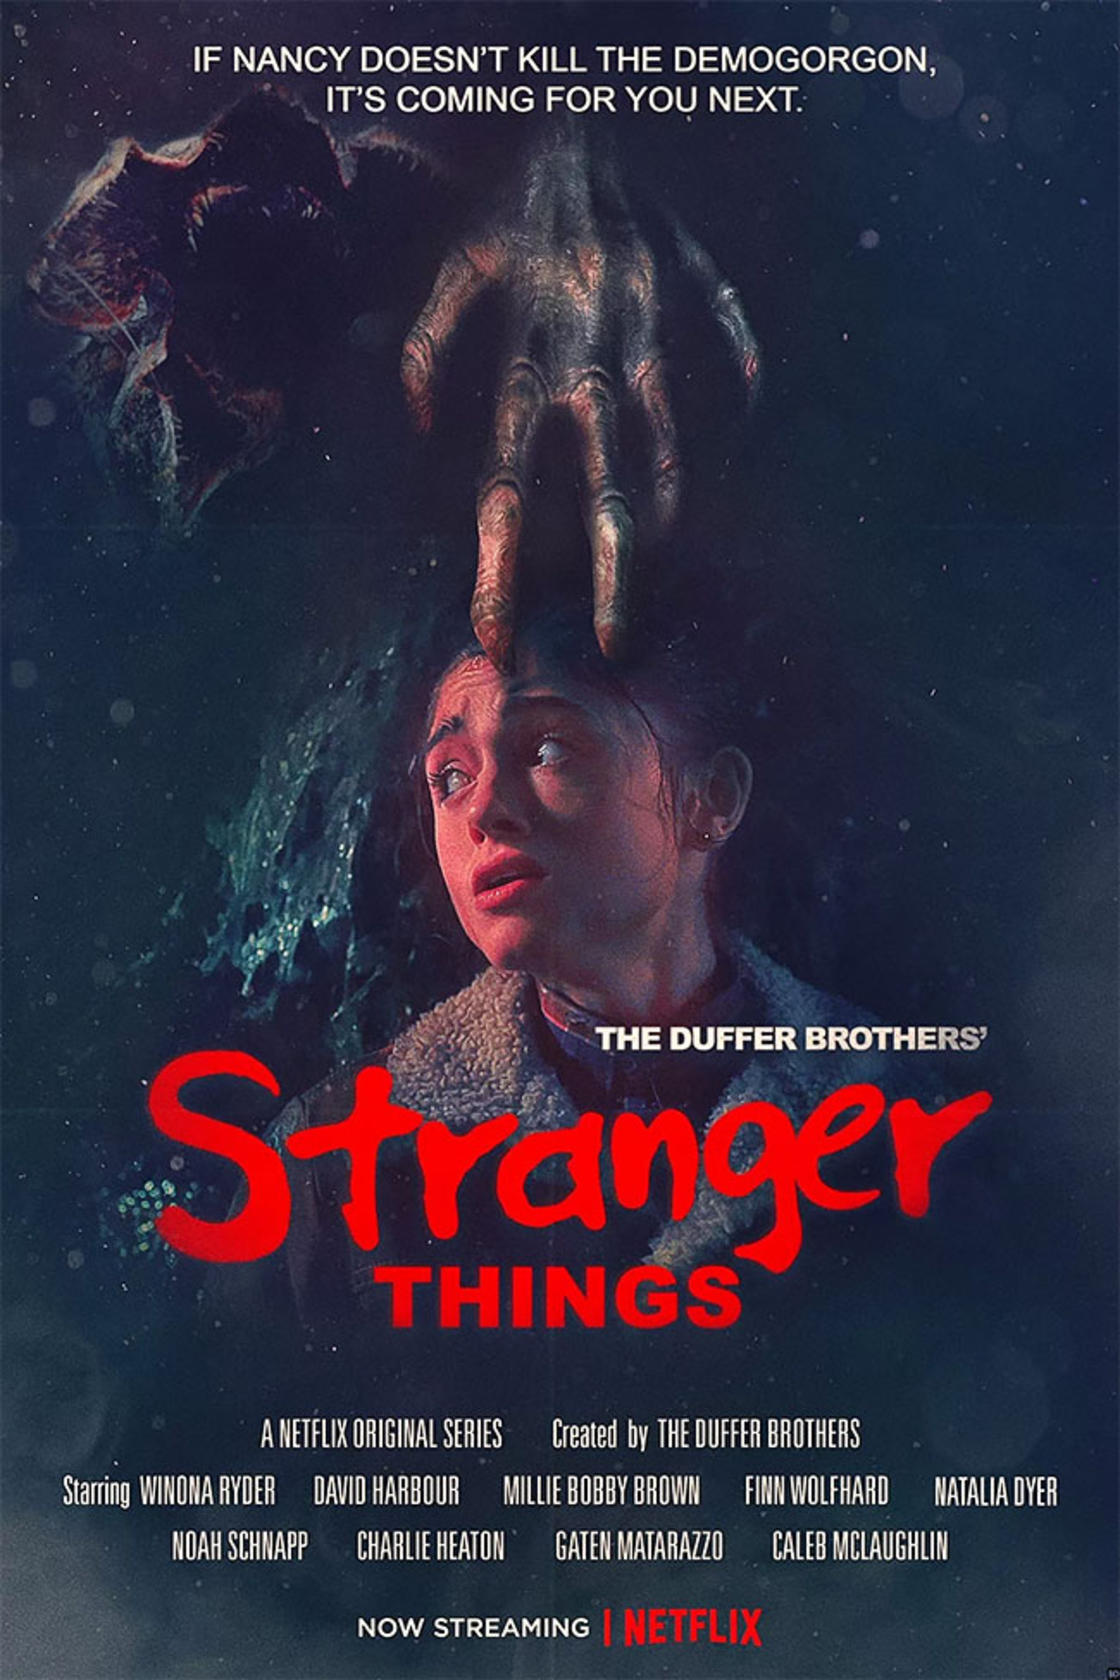 Stranger Things – New posters in tribute to cult movies from the 80s